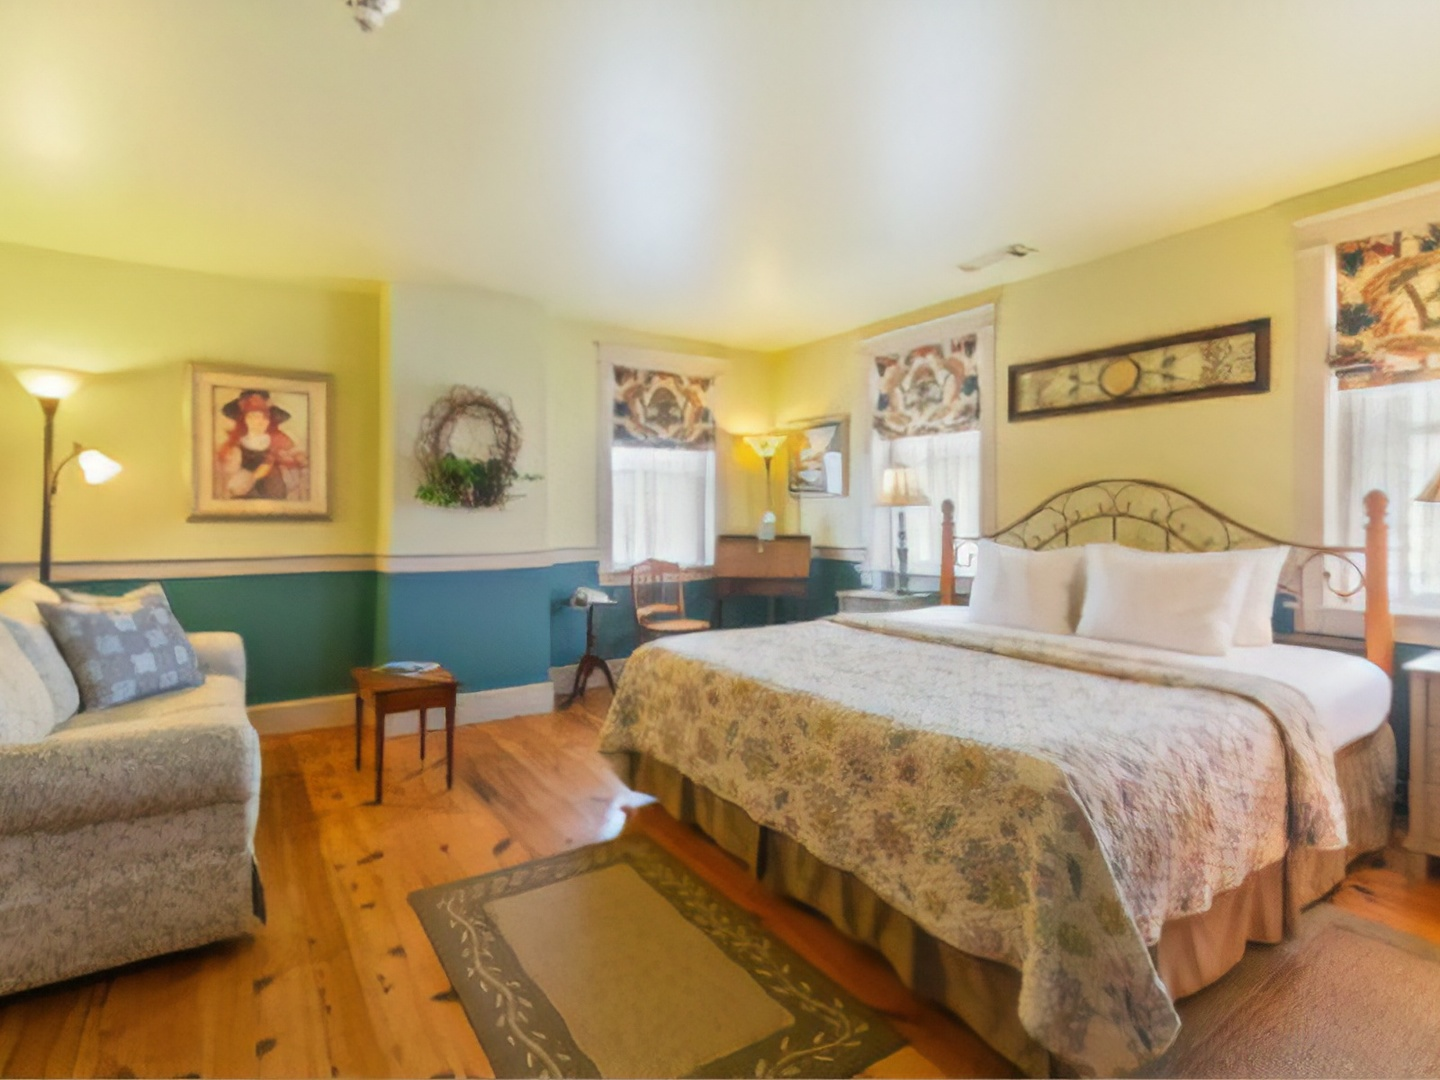 Gordonville Bed and Breakfast